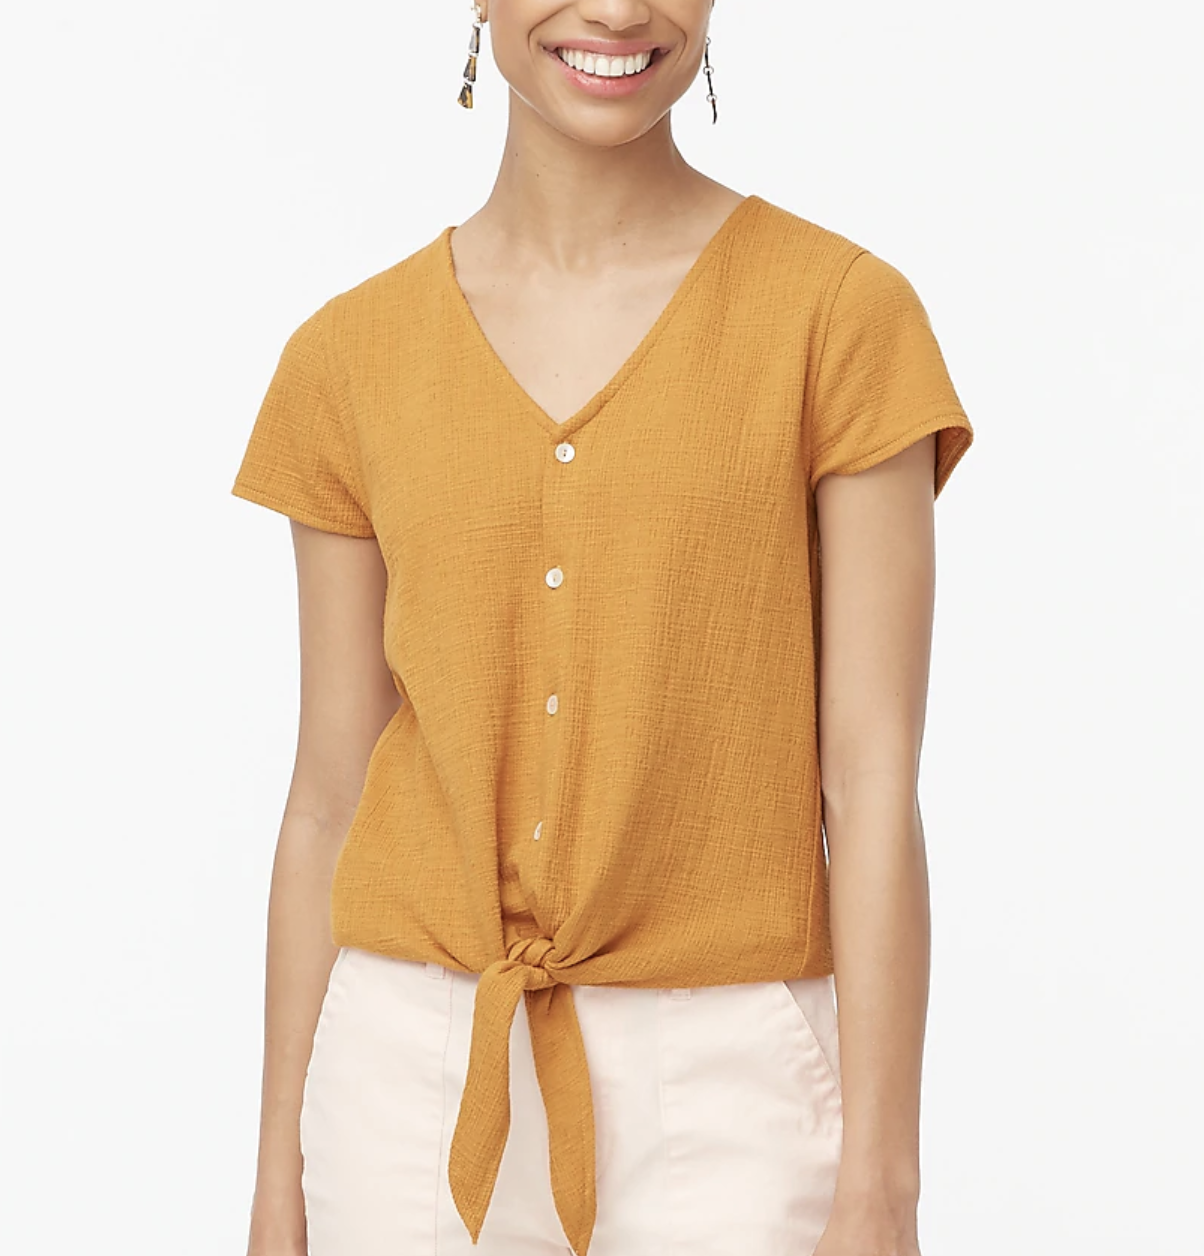 A model wears textured tie-front top in a burnished copper color